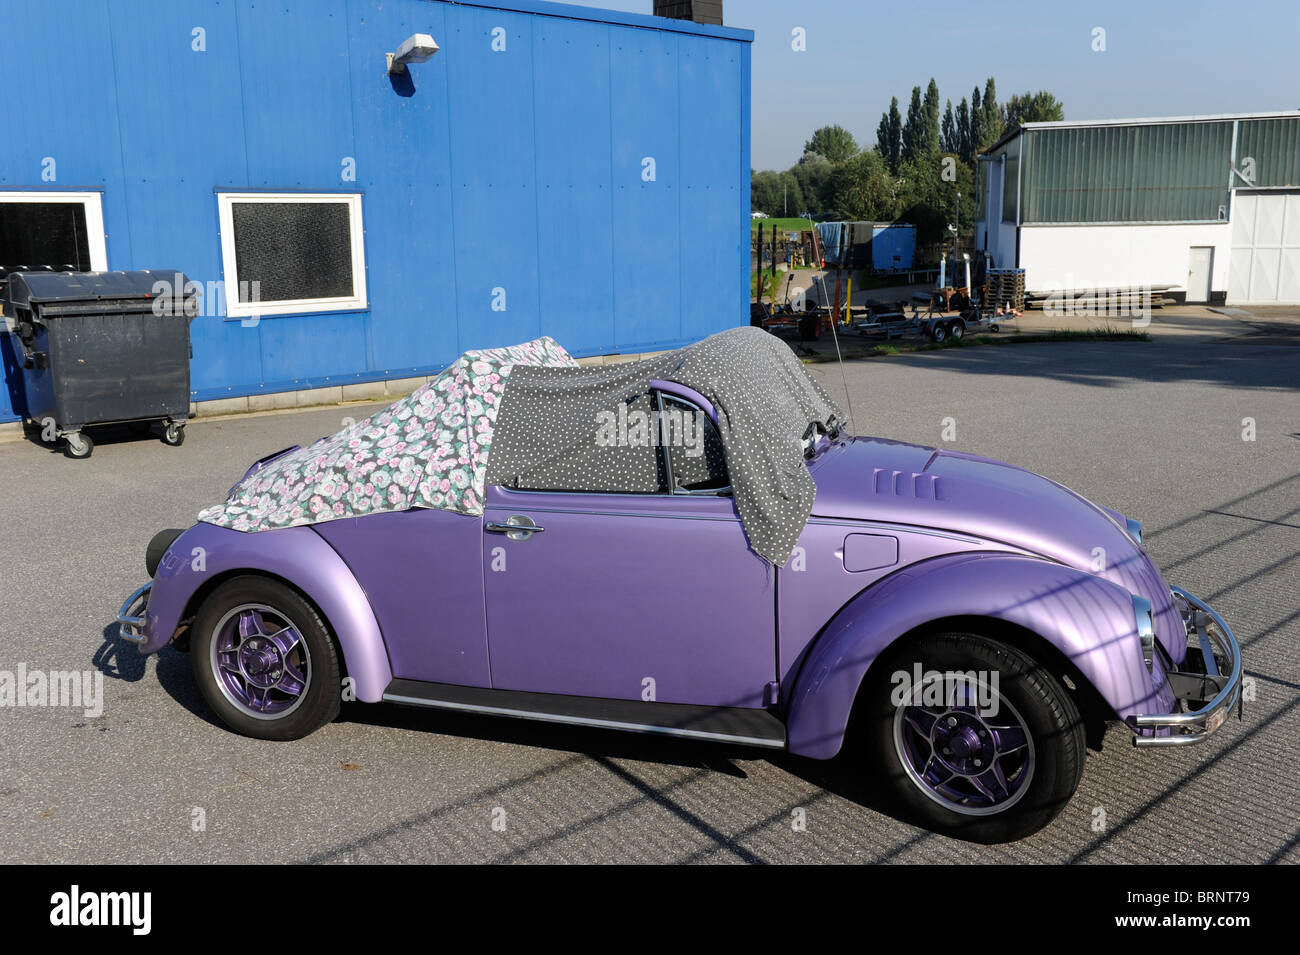 Germany Hamburg VW beetle cabriolet Volkswagen Kaefer cabrio - Stock Image